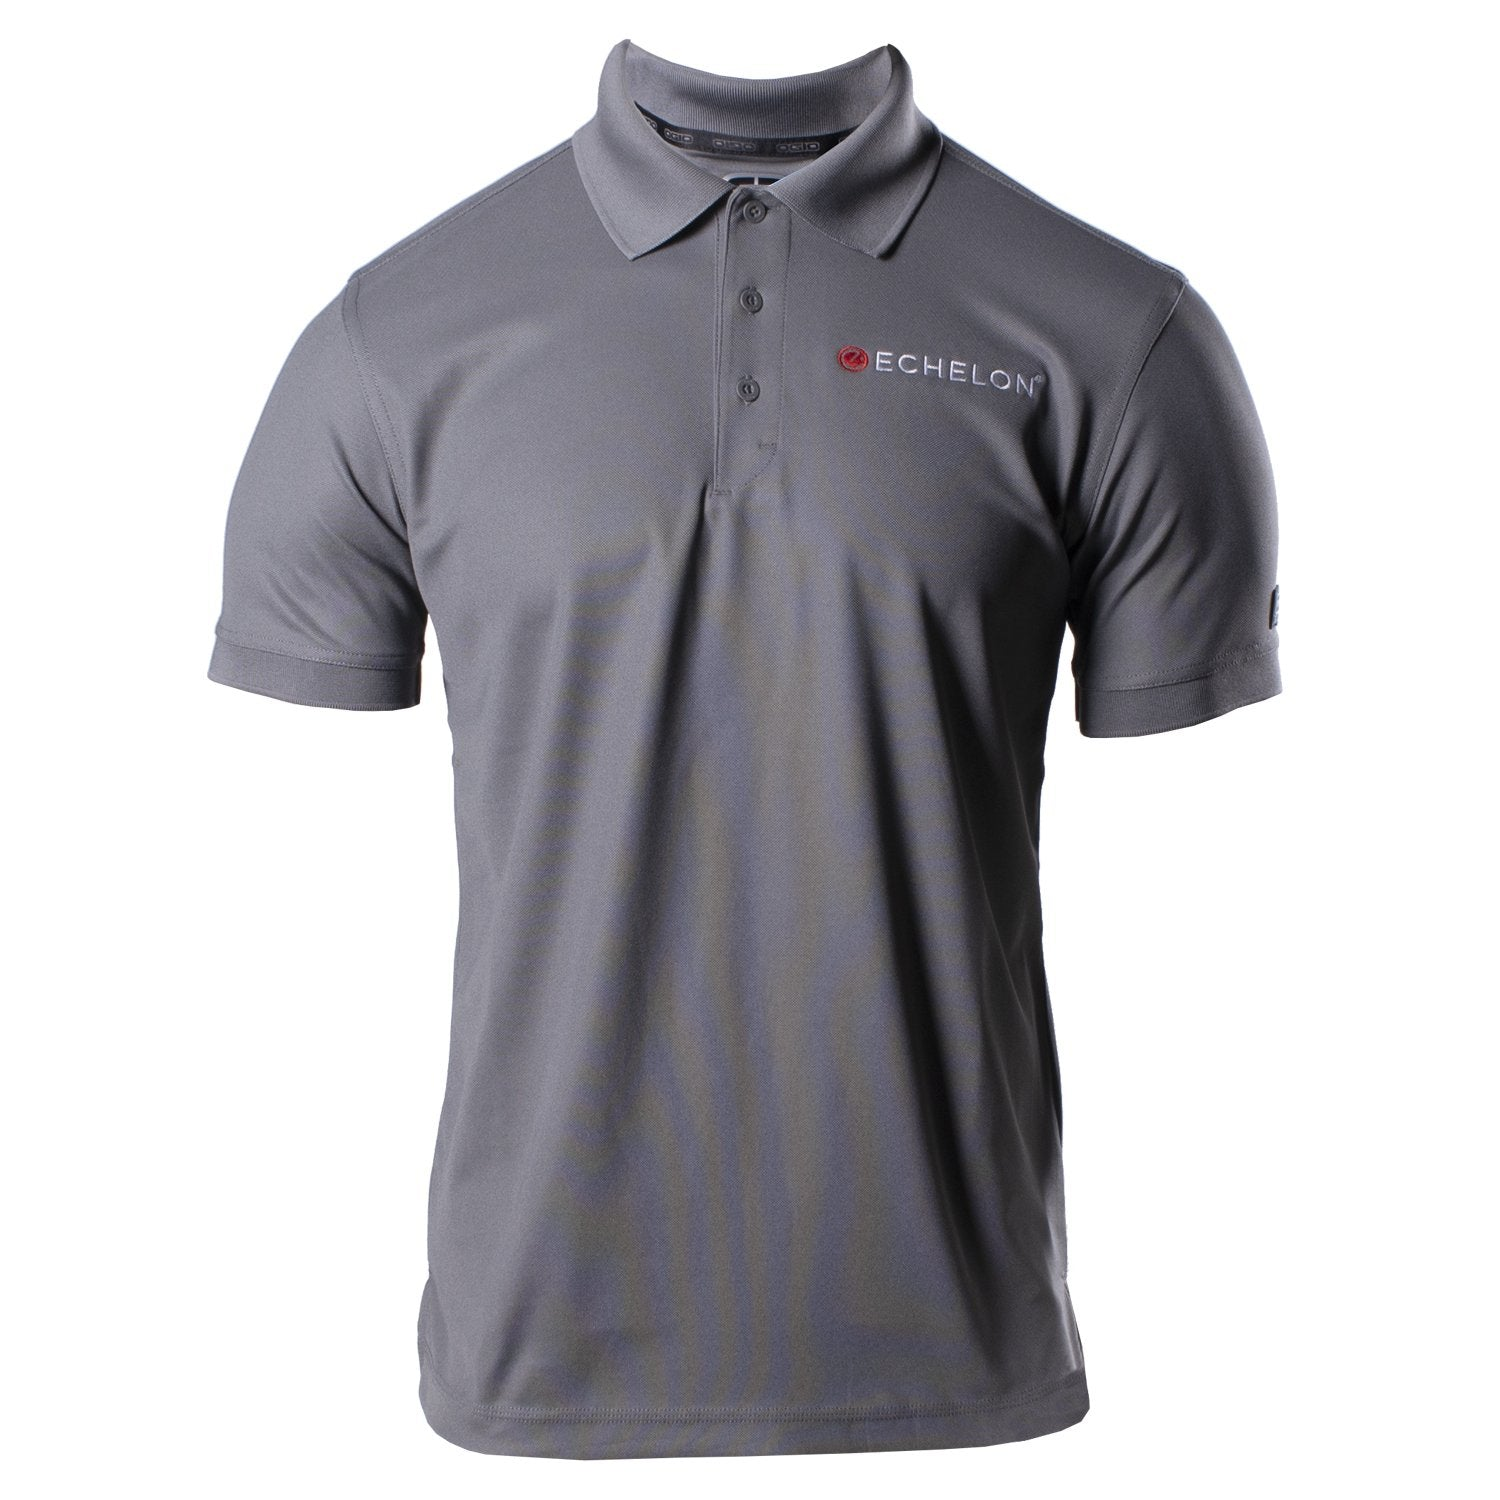 Echelon Men's Classic Embroidered Polo Shirt - Echelon Fit US